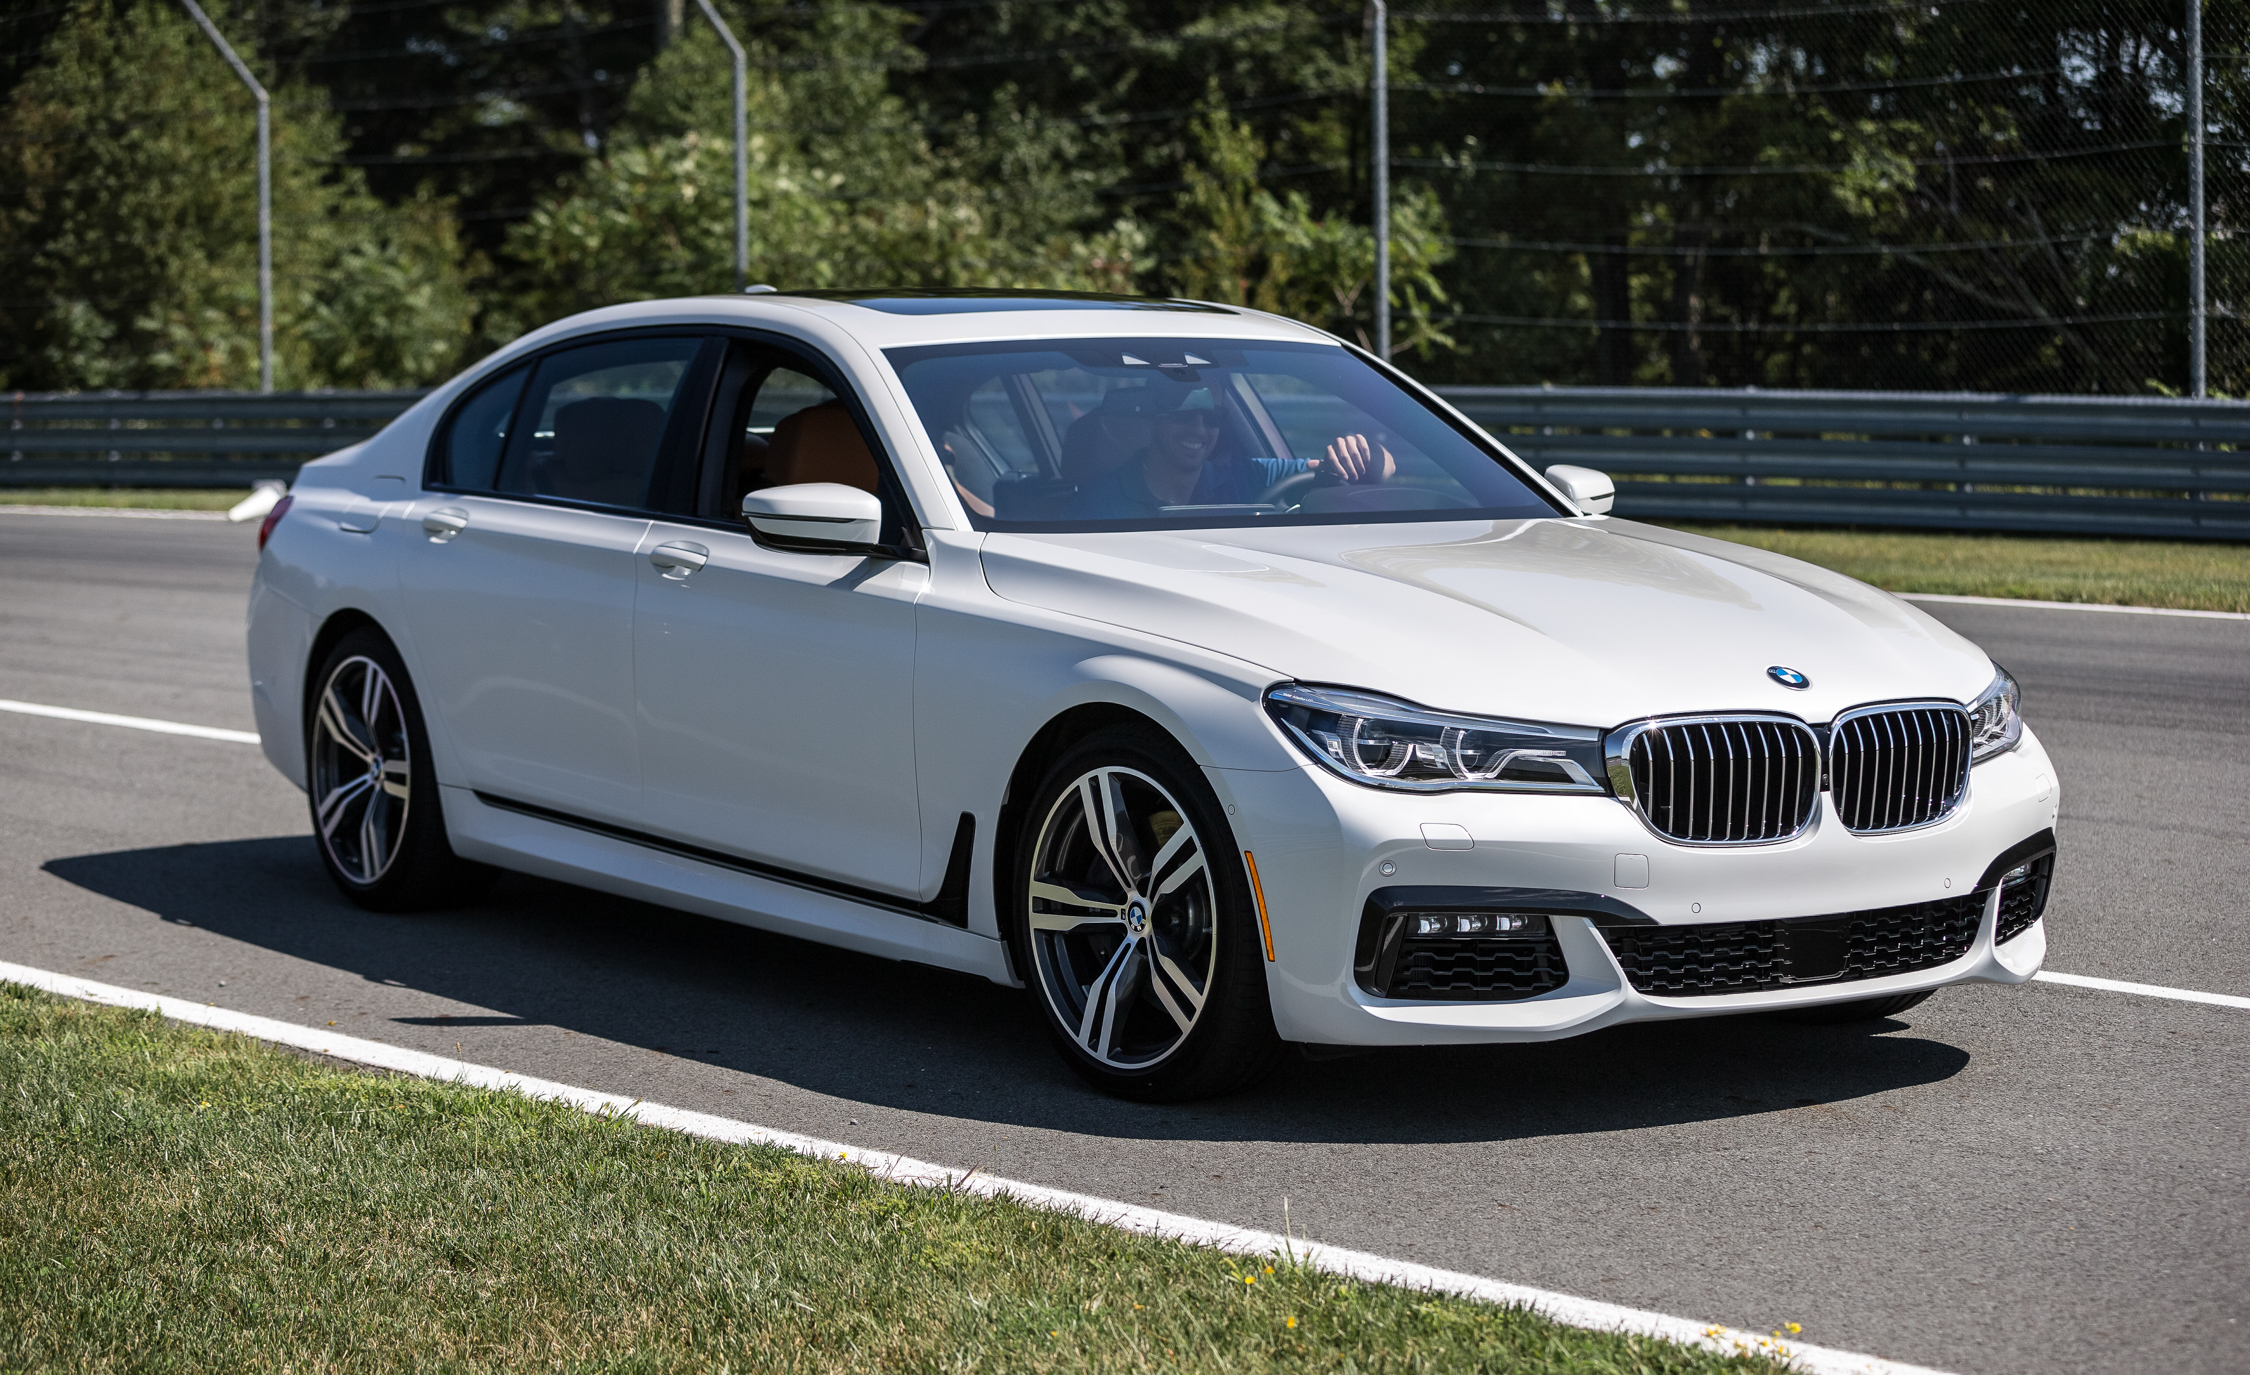 2016 bmw 750i xdrive white exterior 8388 cars performance reviews and test drive. Black Bedroom Furniture Sets. Home Design Ideas